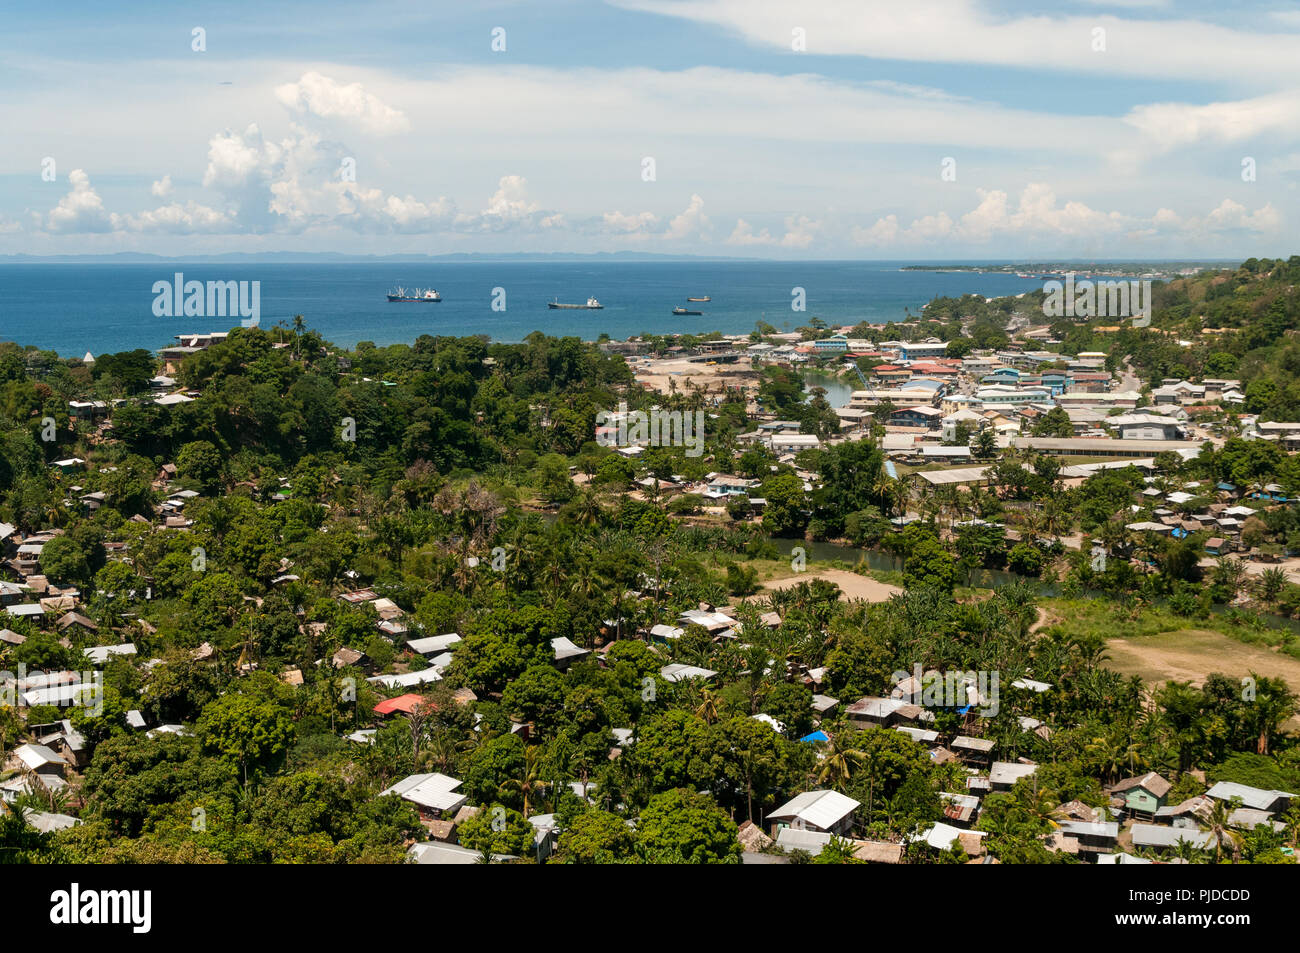 View over Honiara and Iron Bottom Sound, Guadalcanal, Solomon Islands - Stock Image